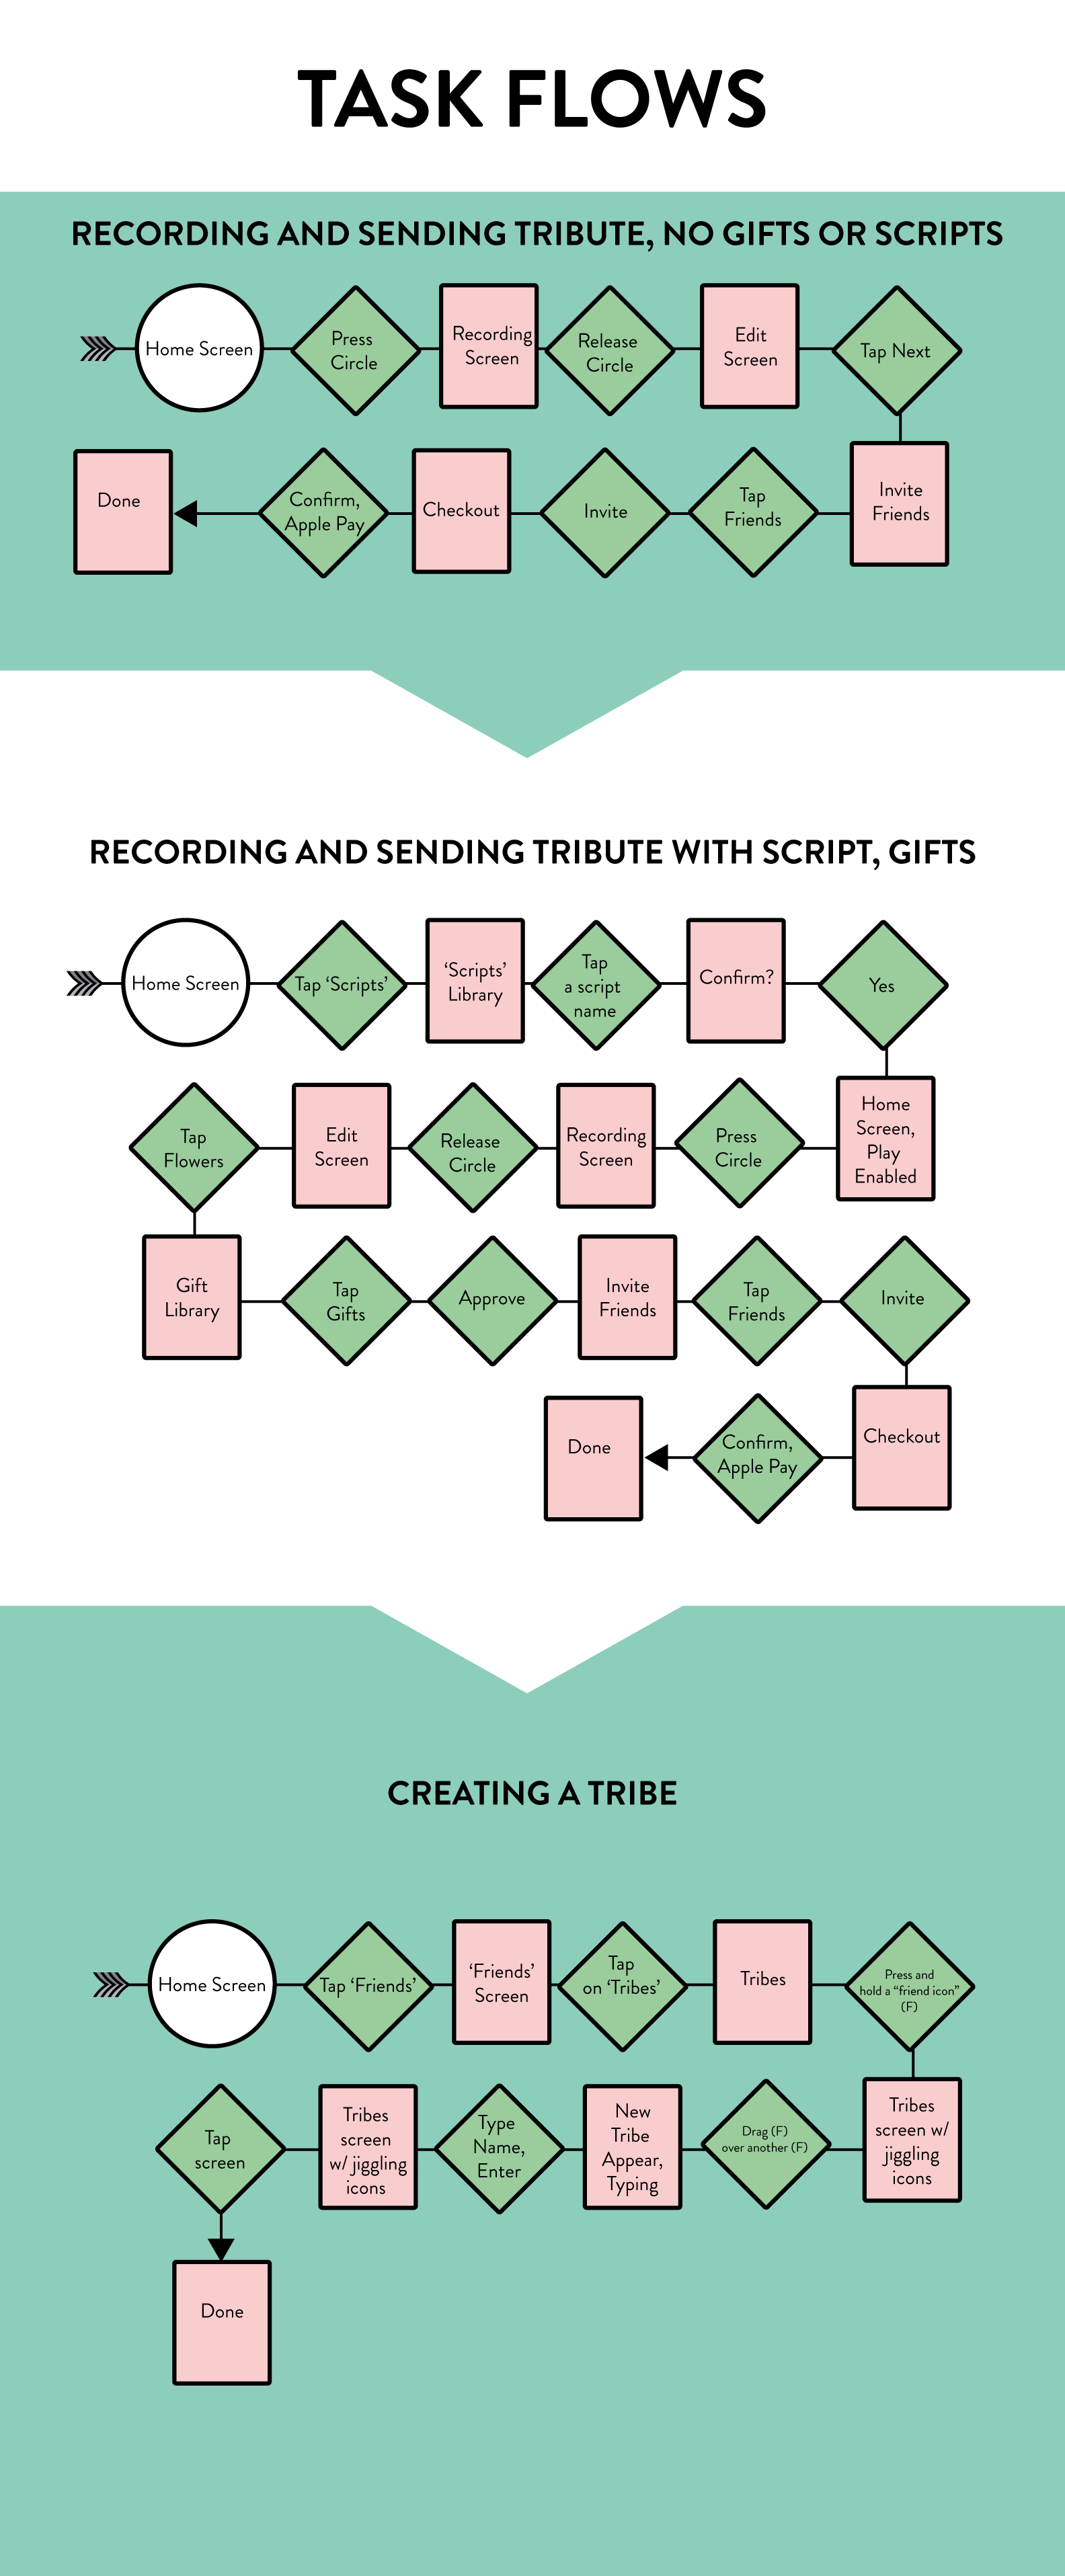 Gifts & Scripts Task Flow.png